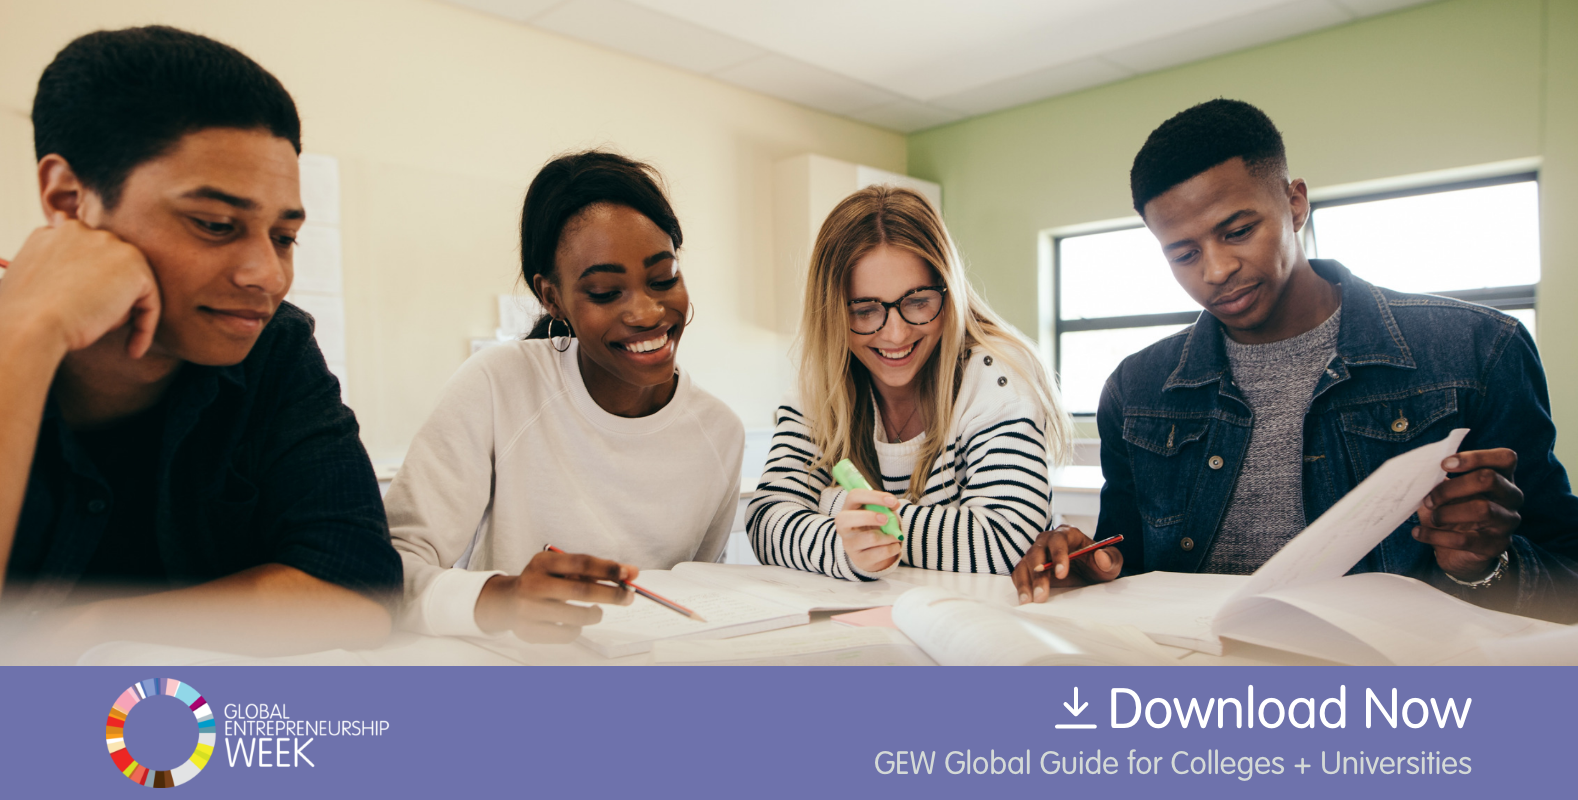 GEW Global Guide for Colleges + Universities